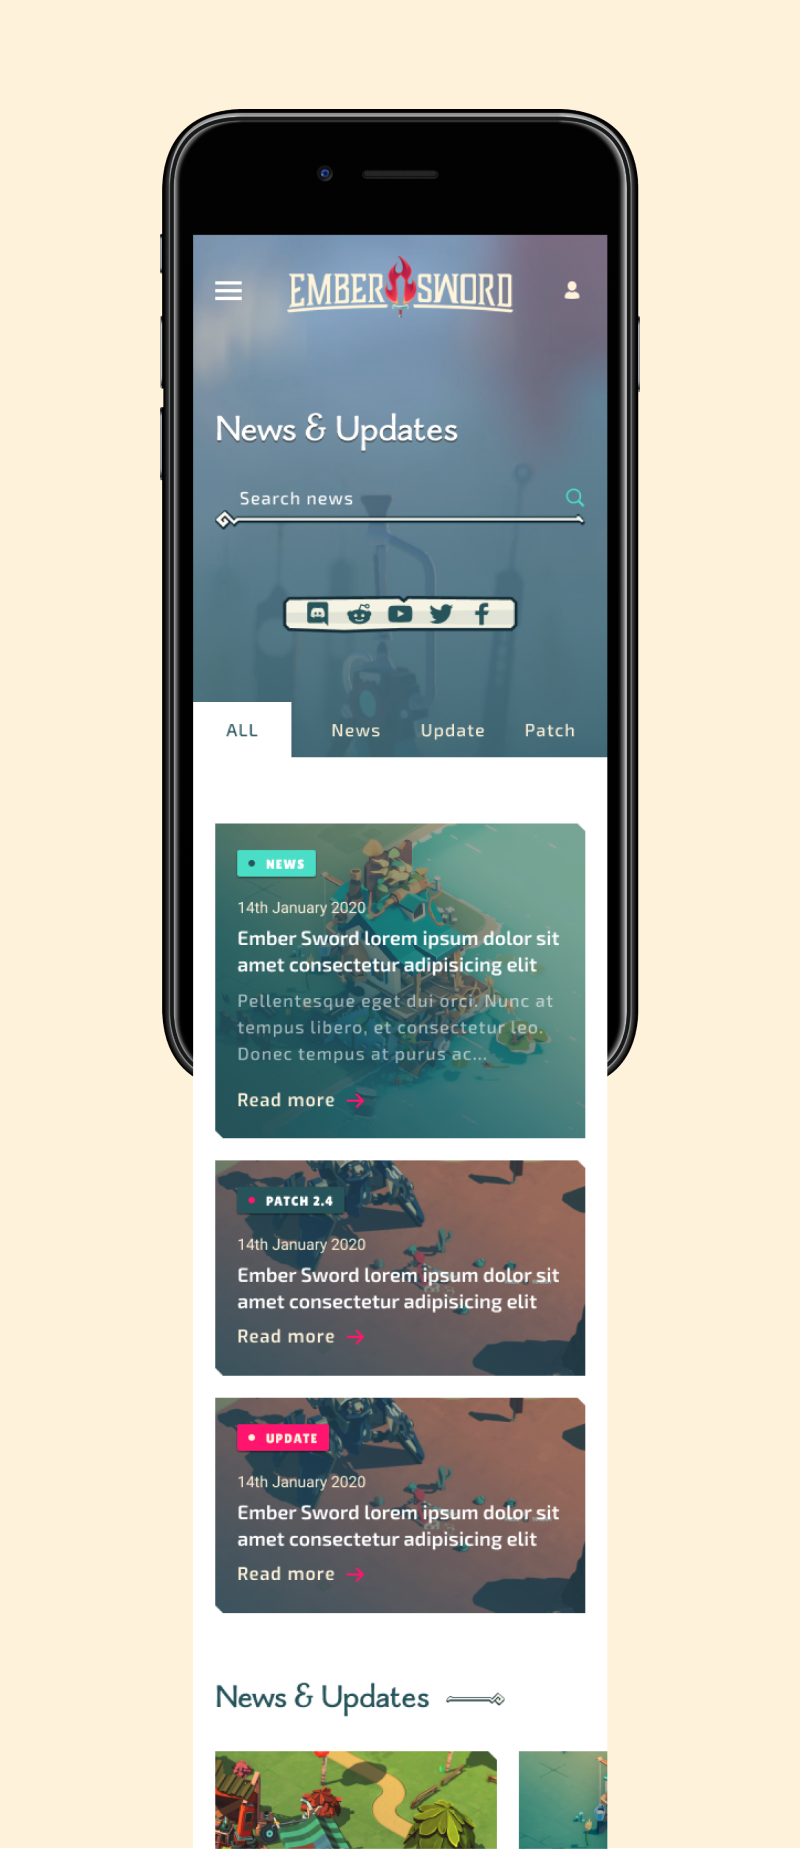 Ember Sword mobile news page UI design